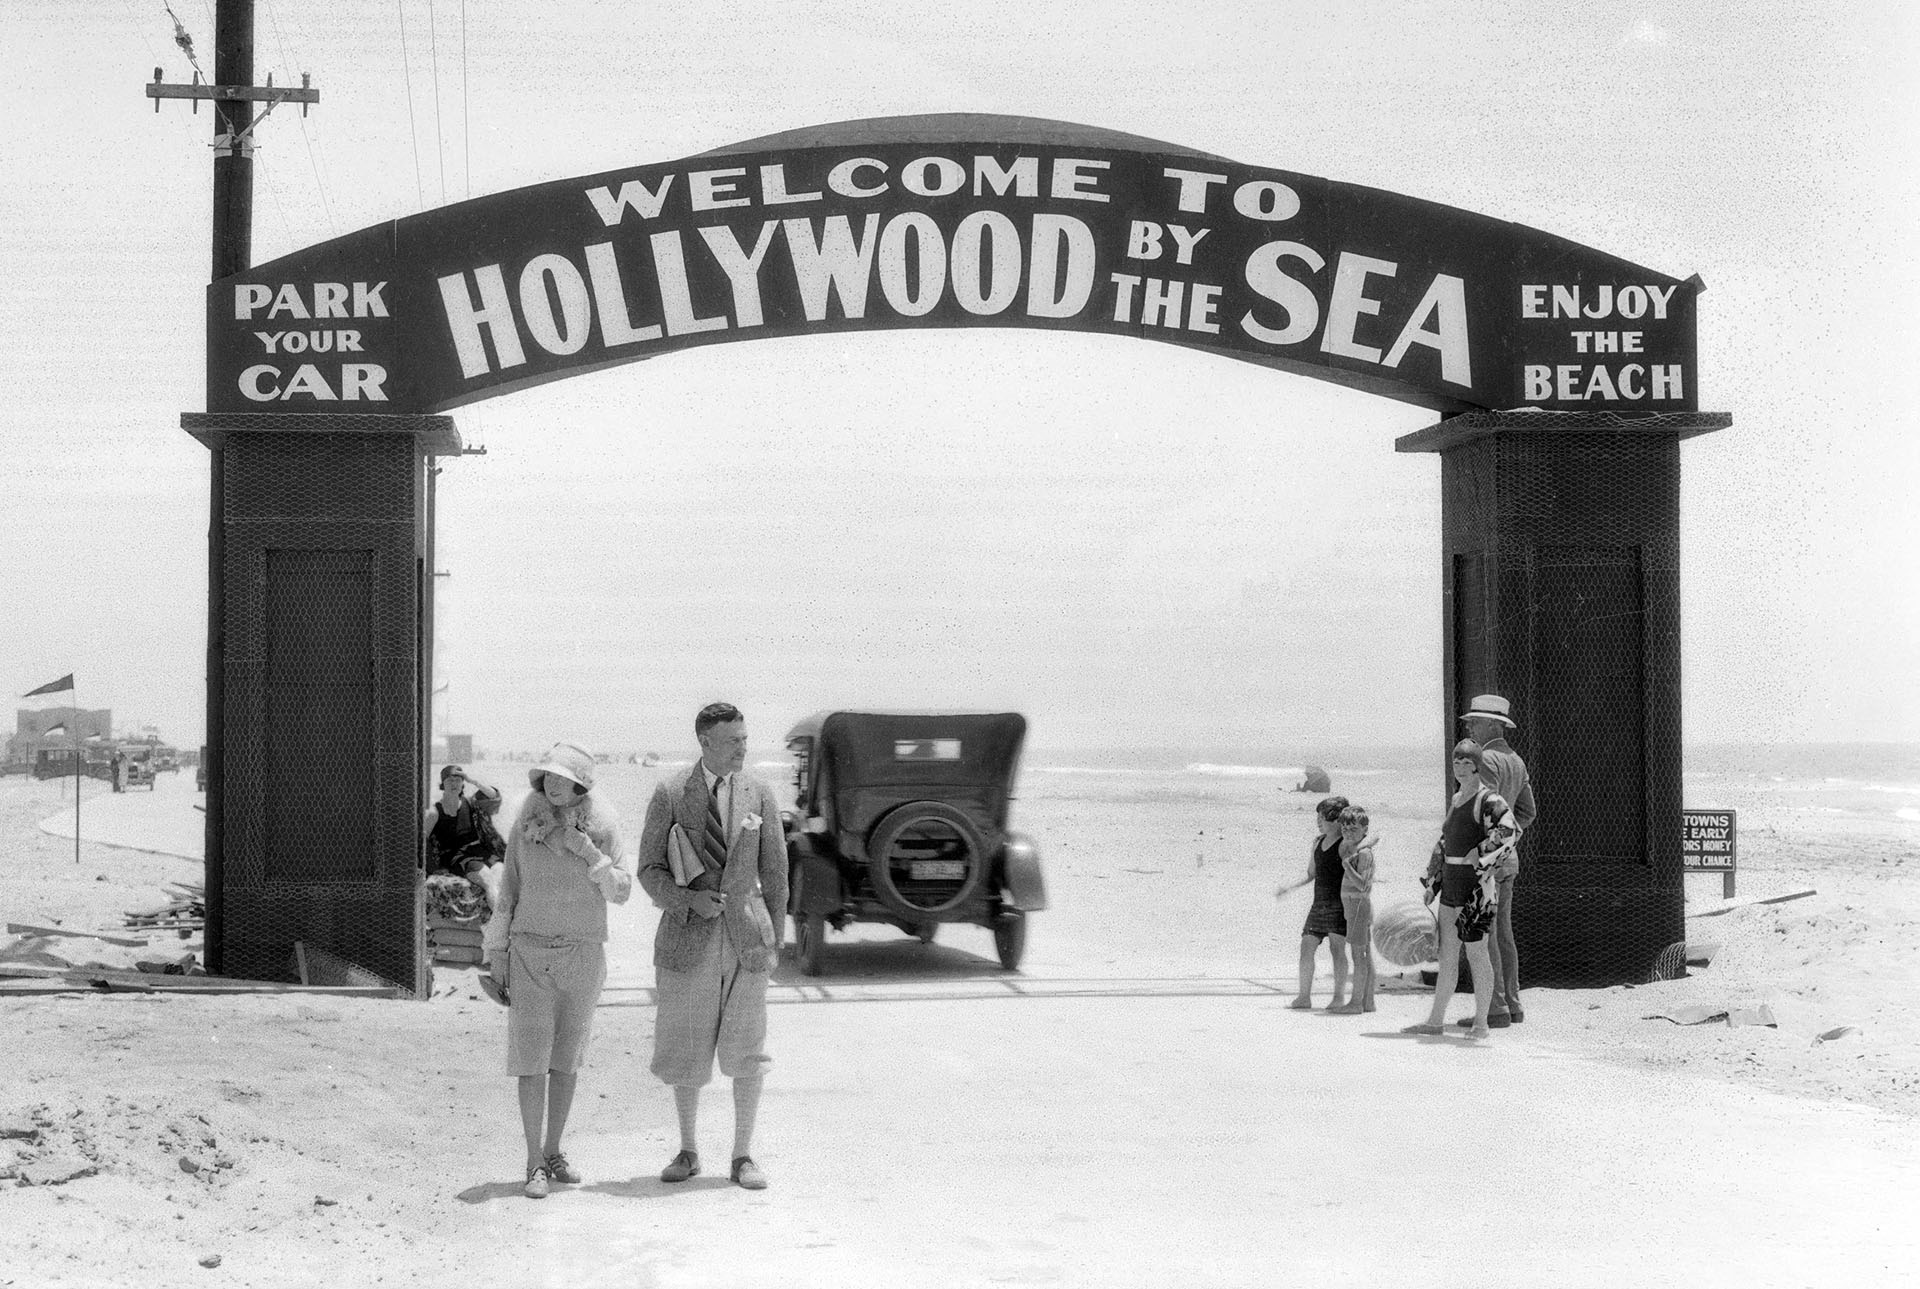 In 1926, a stretch of Oxnard's beach was transformed into Hollywood-by-the-Sea, fifty miles west of Tinseltown. Courtesy of the USC Libraries - Dick Whittington Photography Collection.